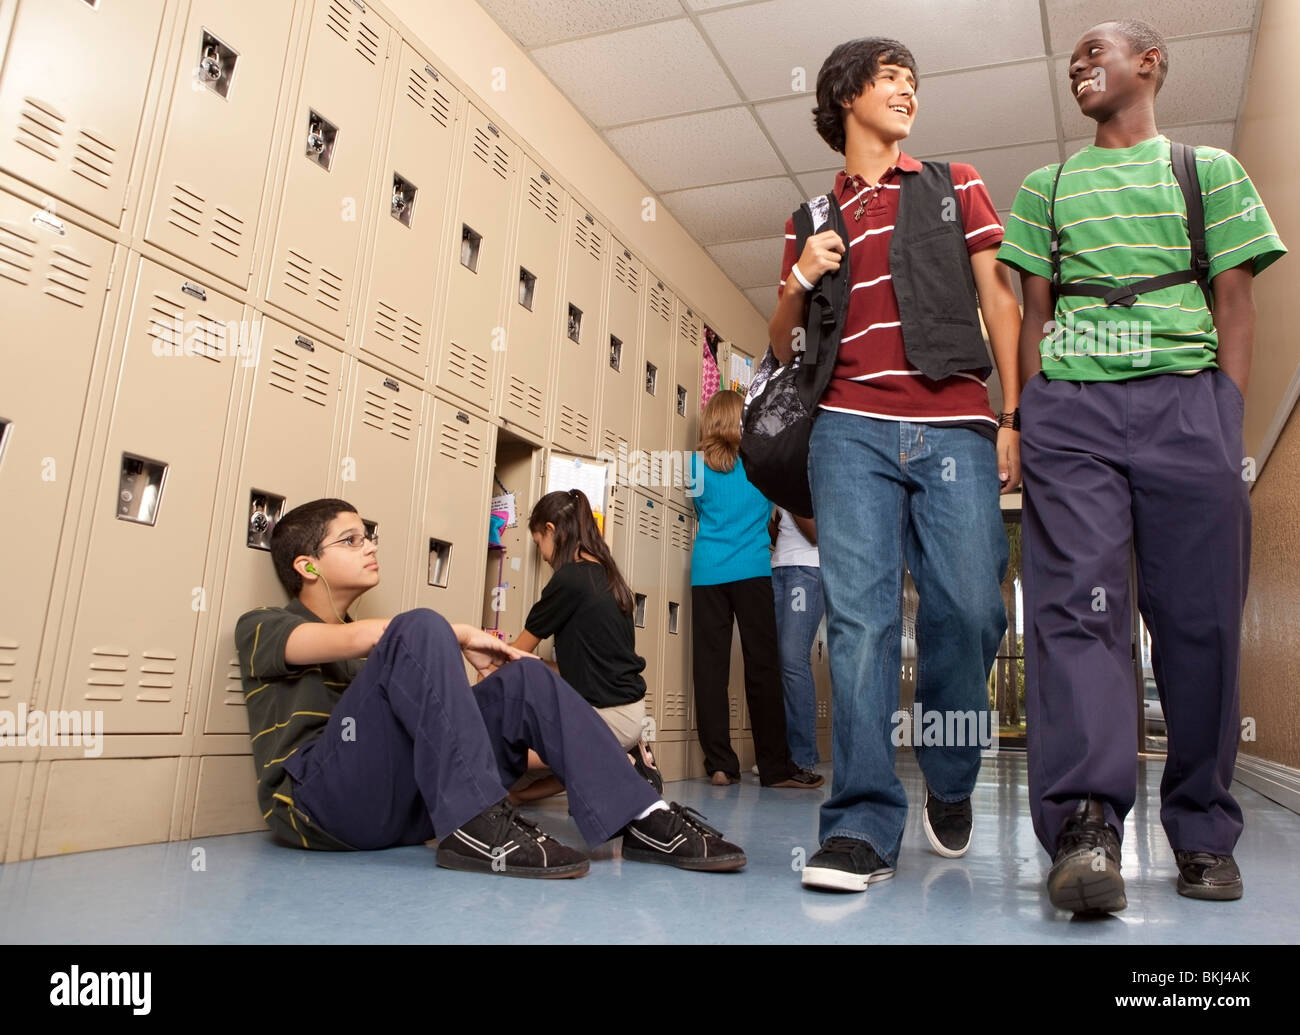 Fort Lauderdale, Florida, United States Of America; Students In The School Hallway Stock Photo